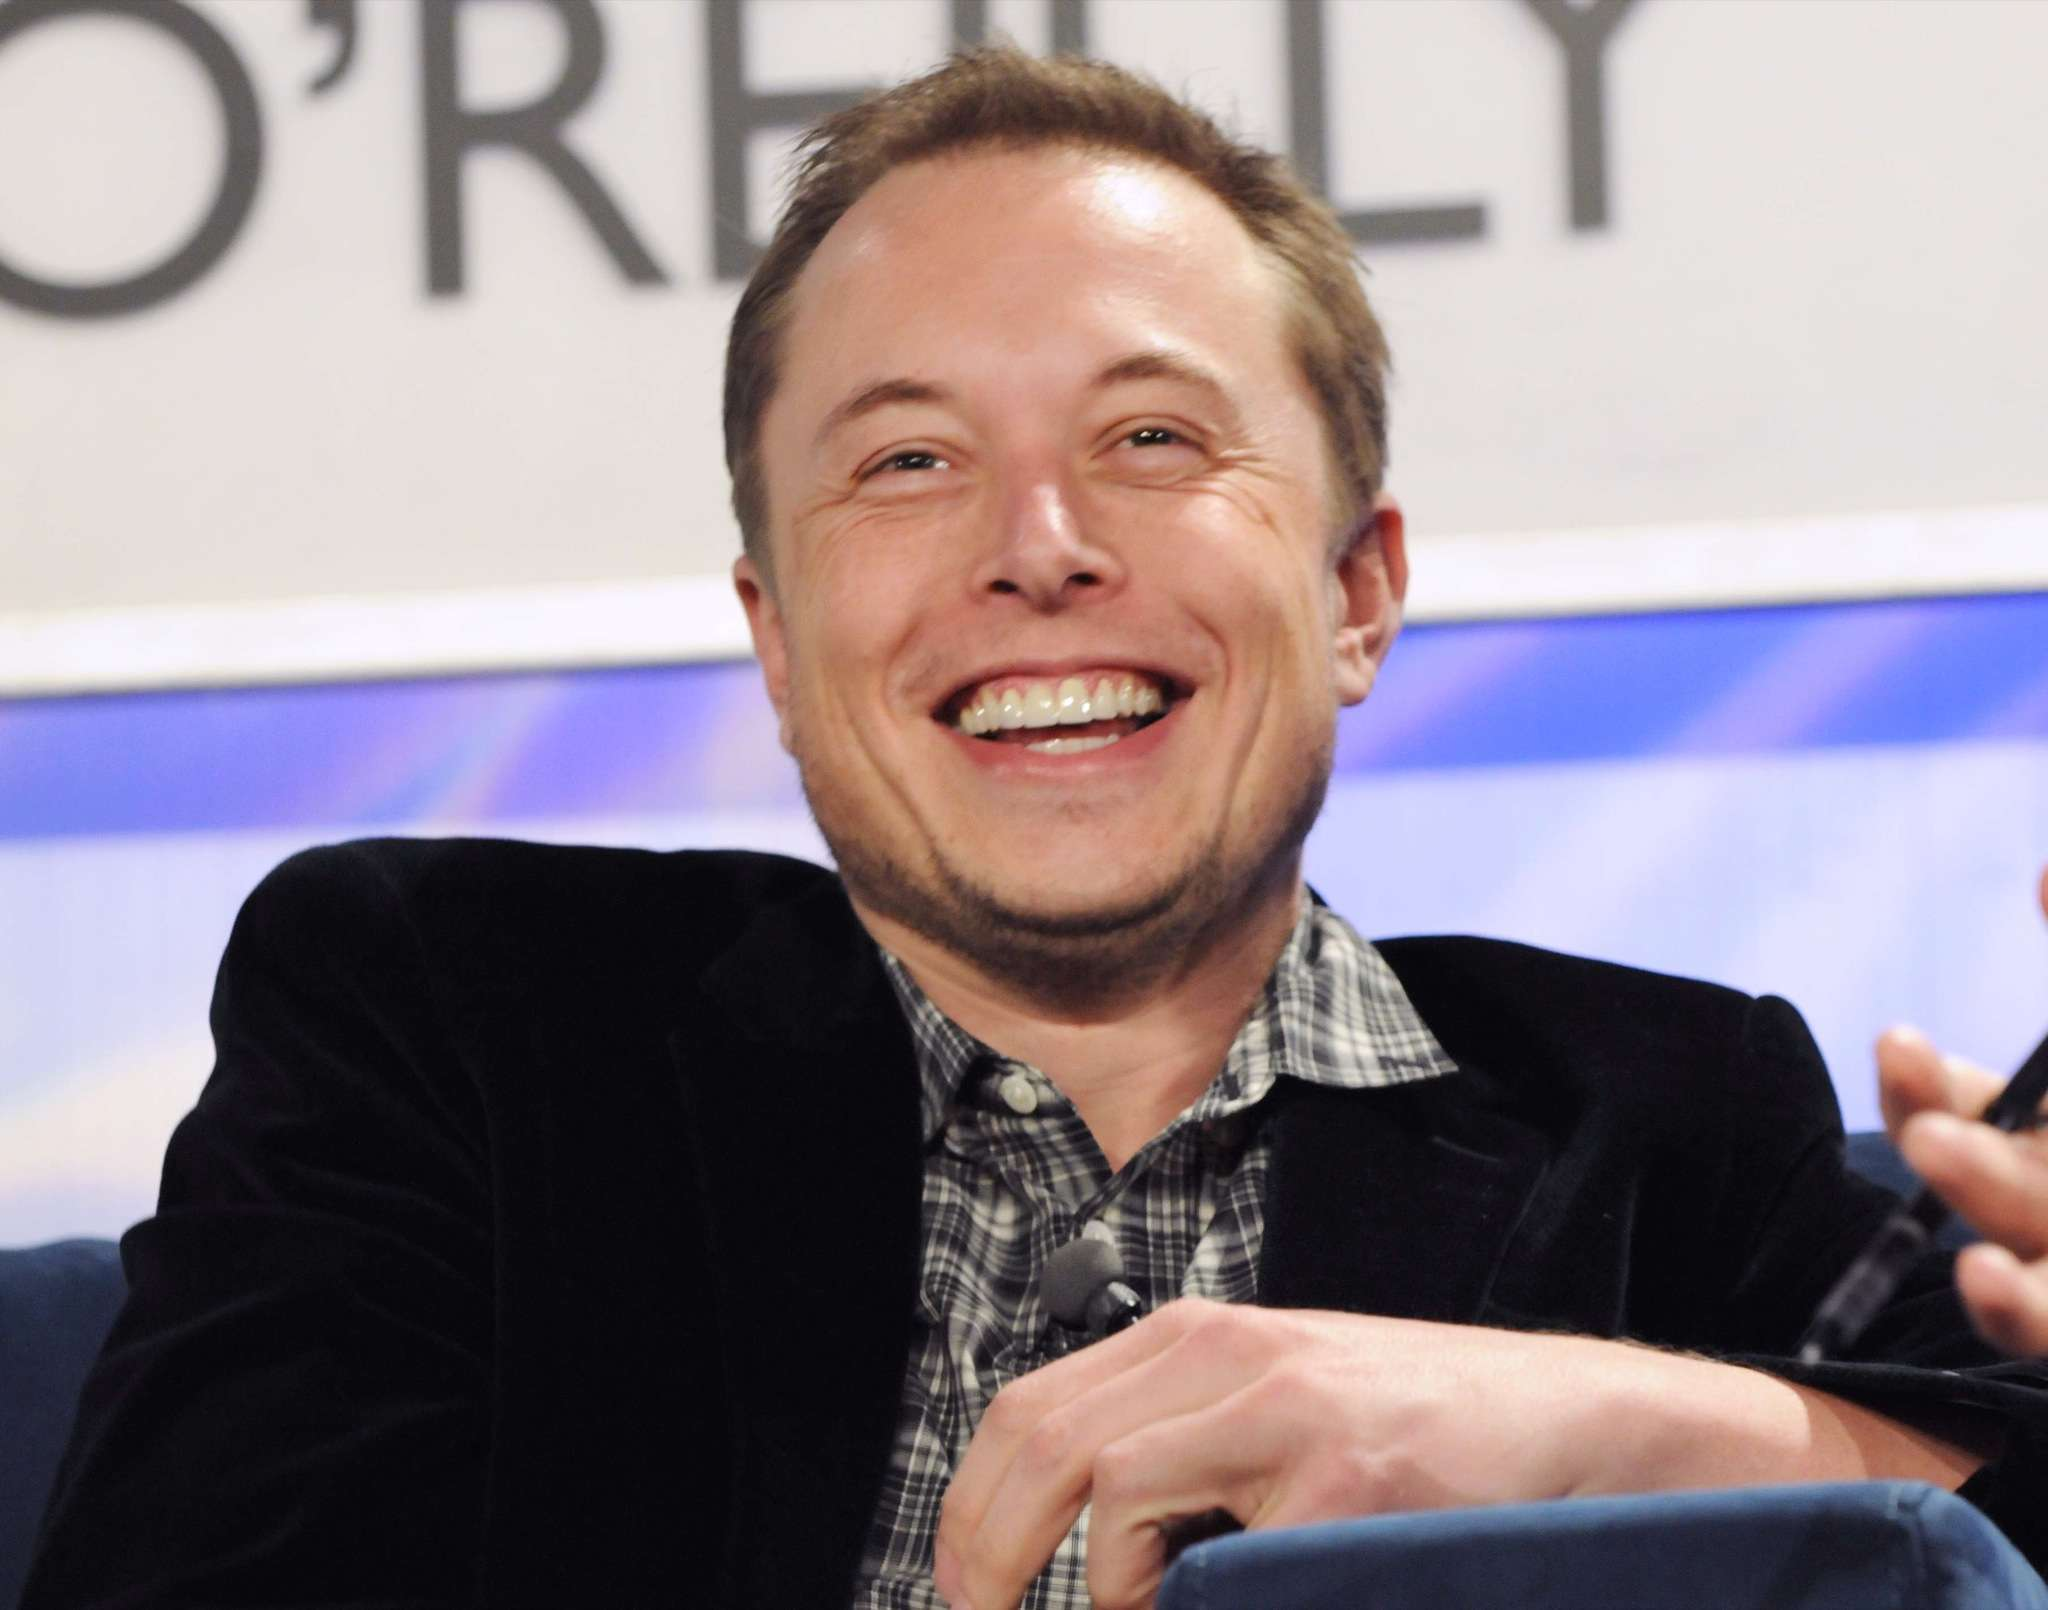 Tesla and Neuralink founder Elon Musk speaks at a forum on the internet in San Francisco on November 7, 2008. (Image Credit: JD Lasica/Flickr)